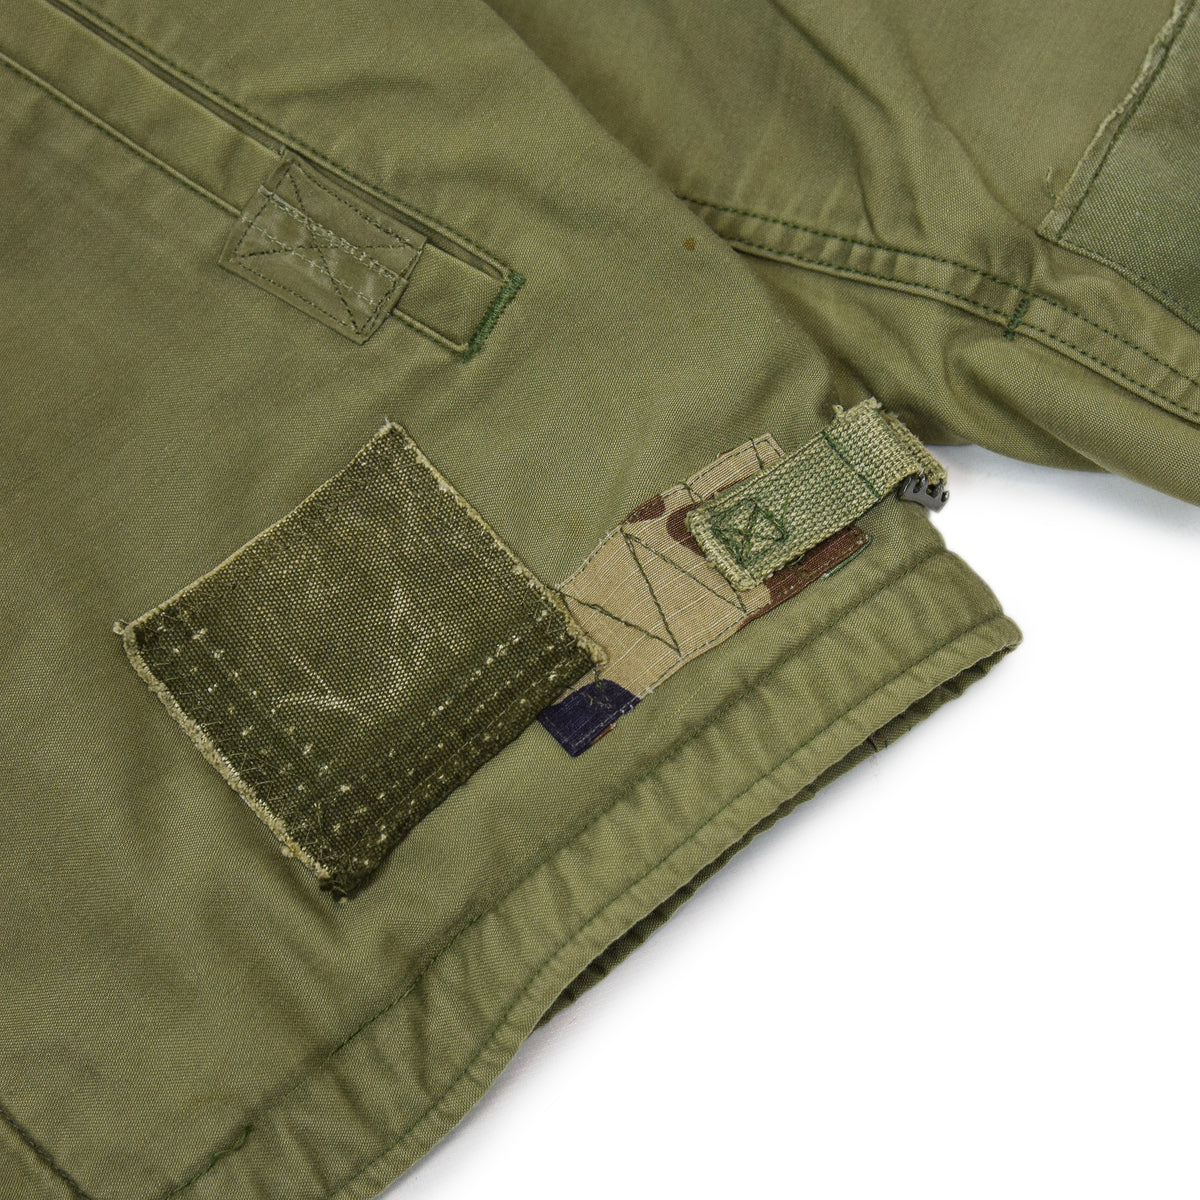 Vintage 80s US Military Darned Fine Reworked A-2 Deck Jacket M cinch waist